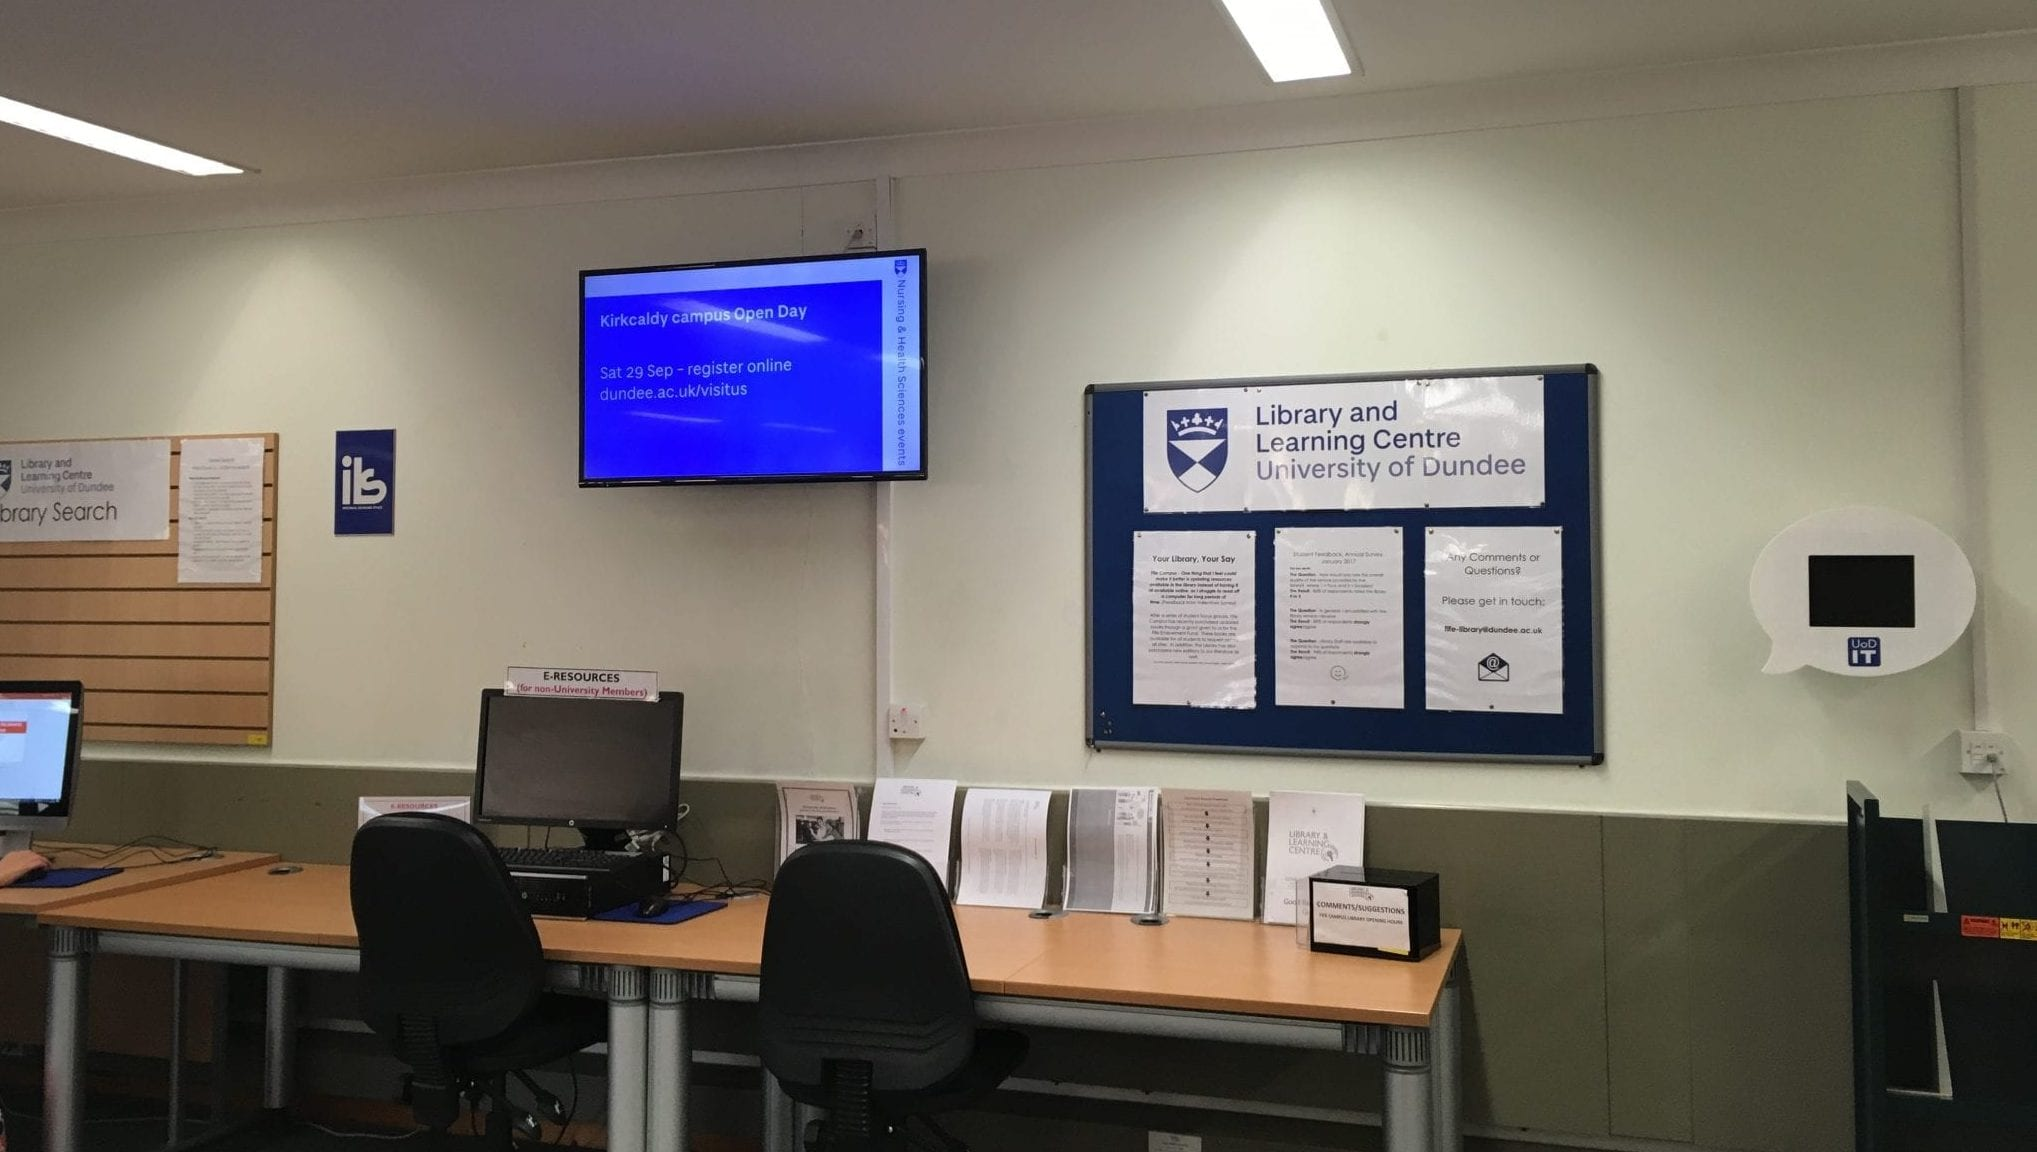 Digital signage in Ninewells library